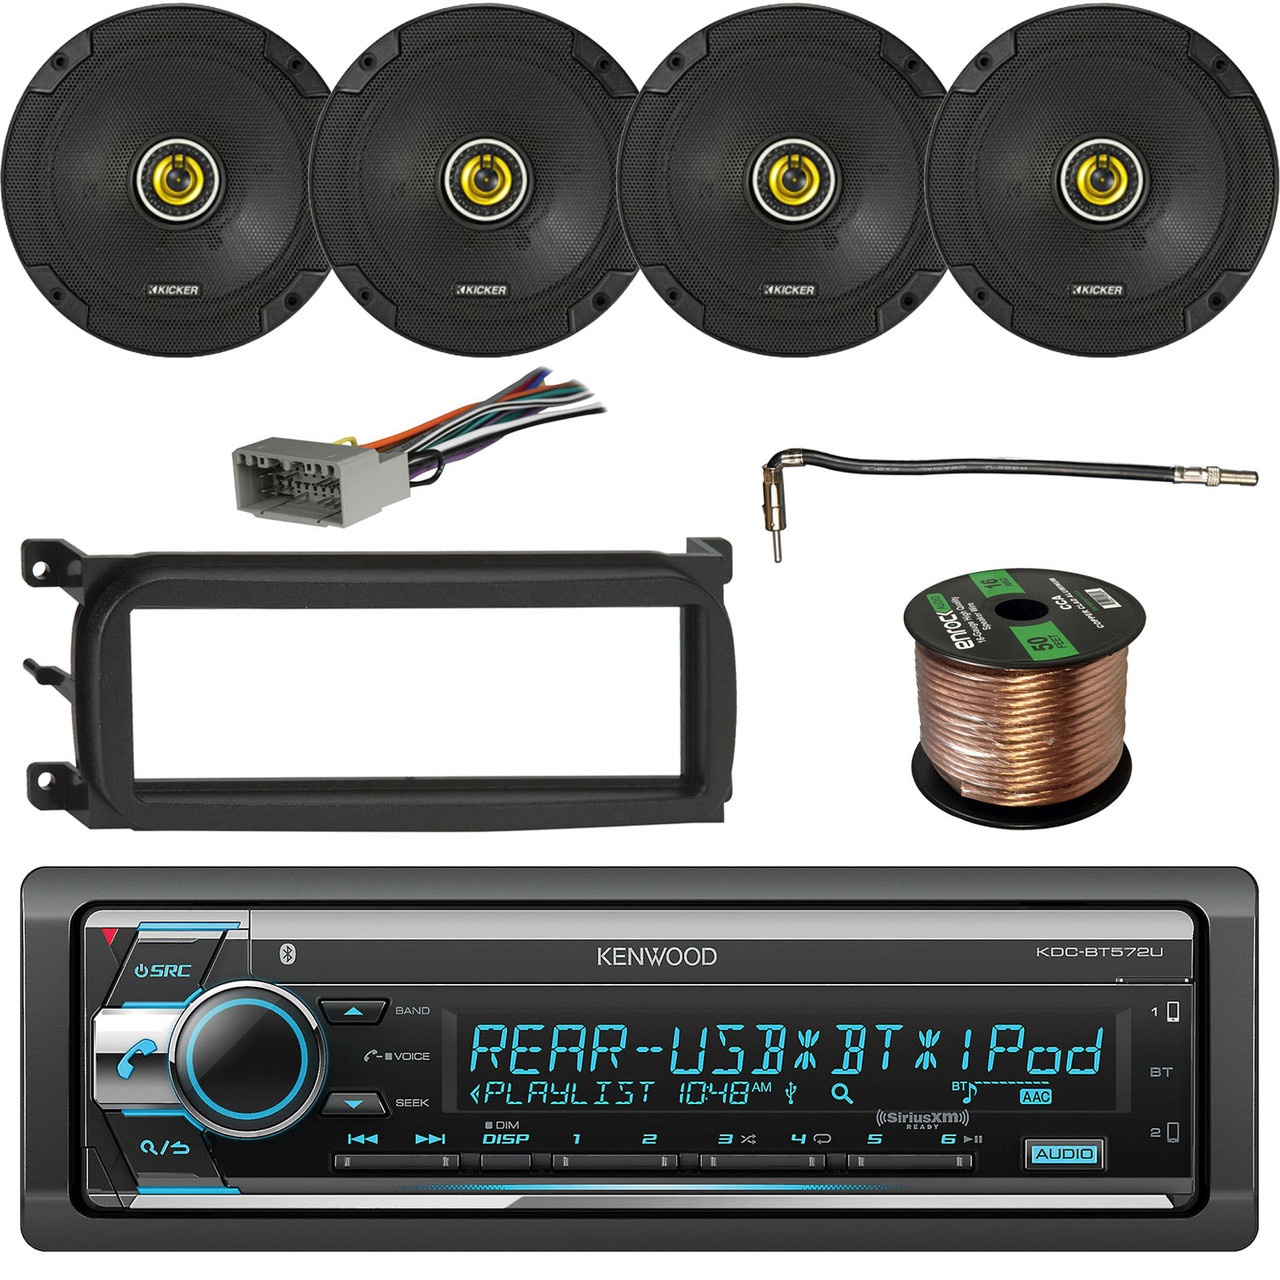 small resolution of  wiring harness colors kenwood kenwood stereo receiver bluetooth w kicker 600w speakers 2 pairs on kenwood